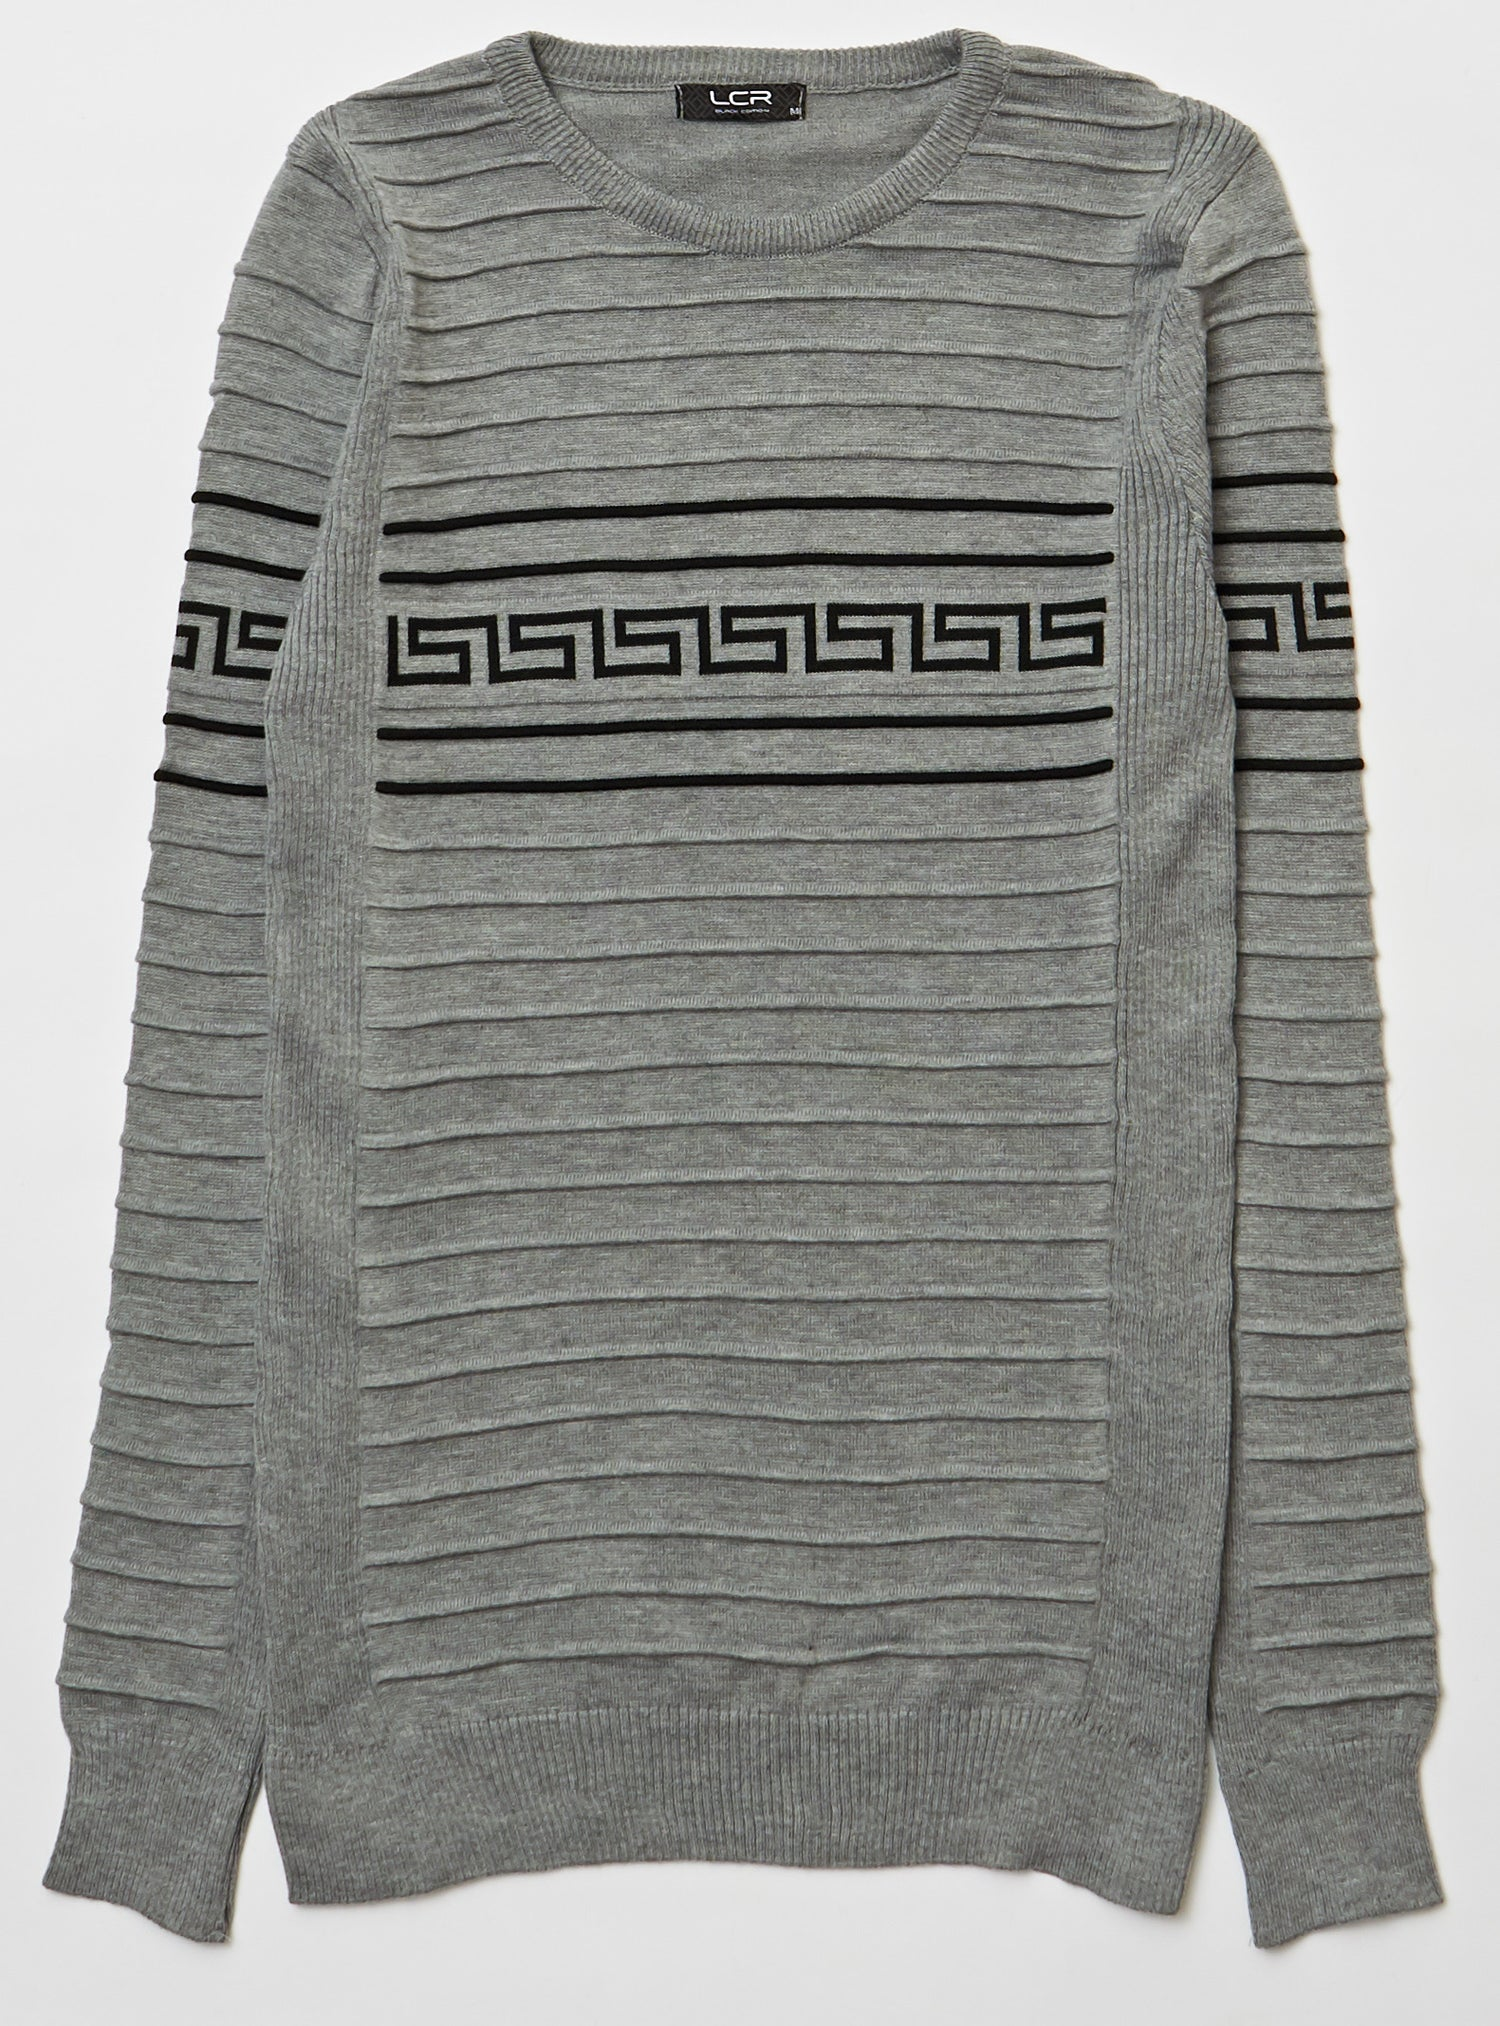 LCR - Crewneck Sweater - Grey And Black - 1950